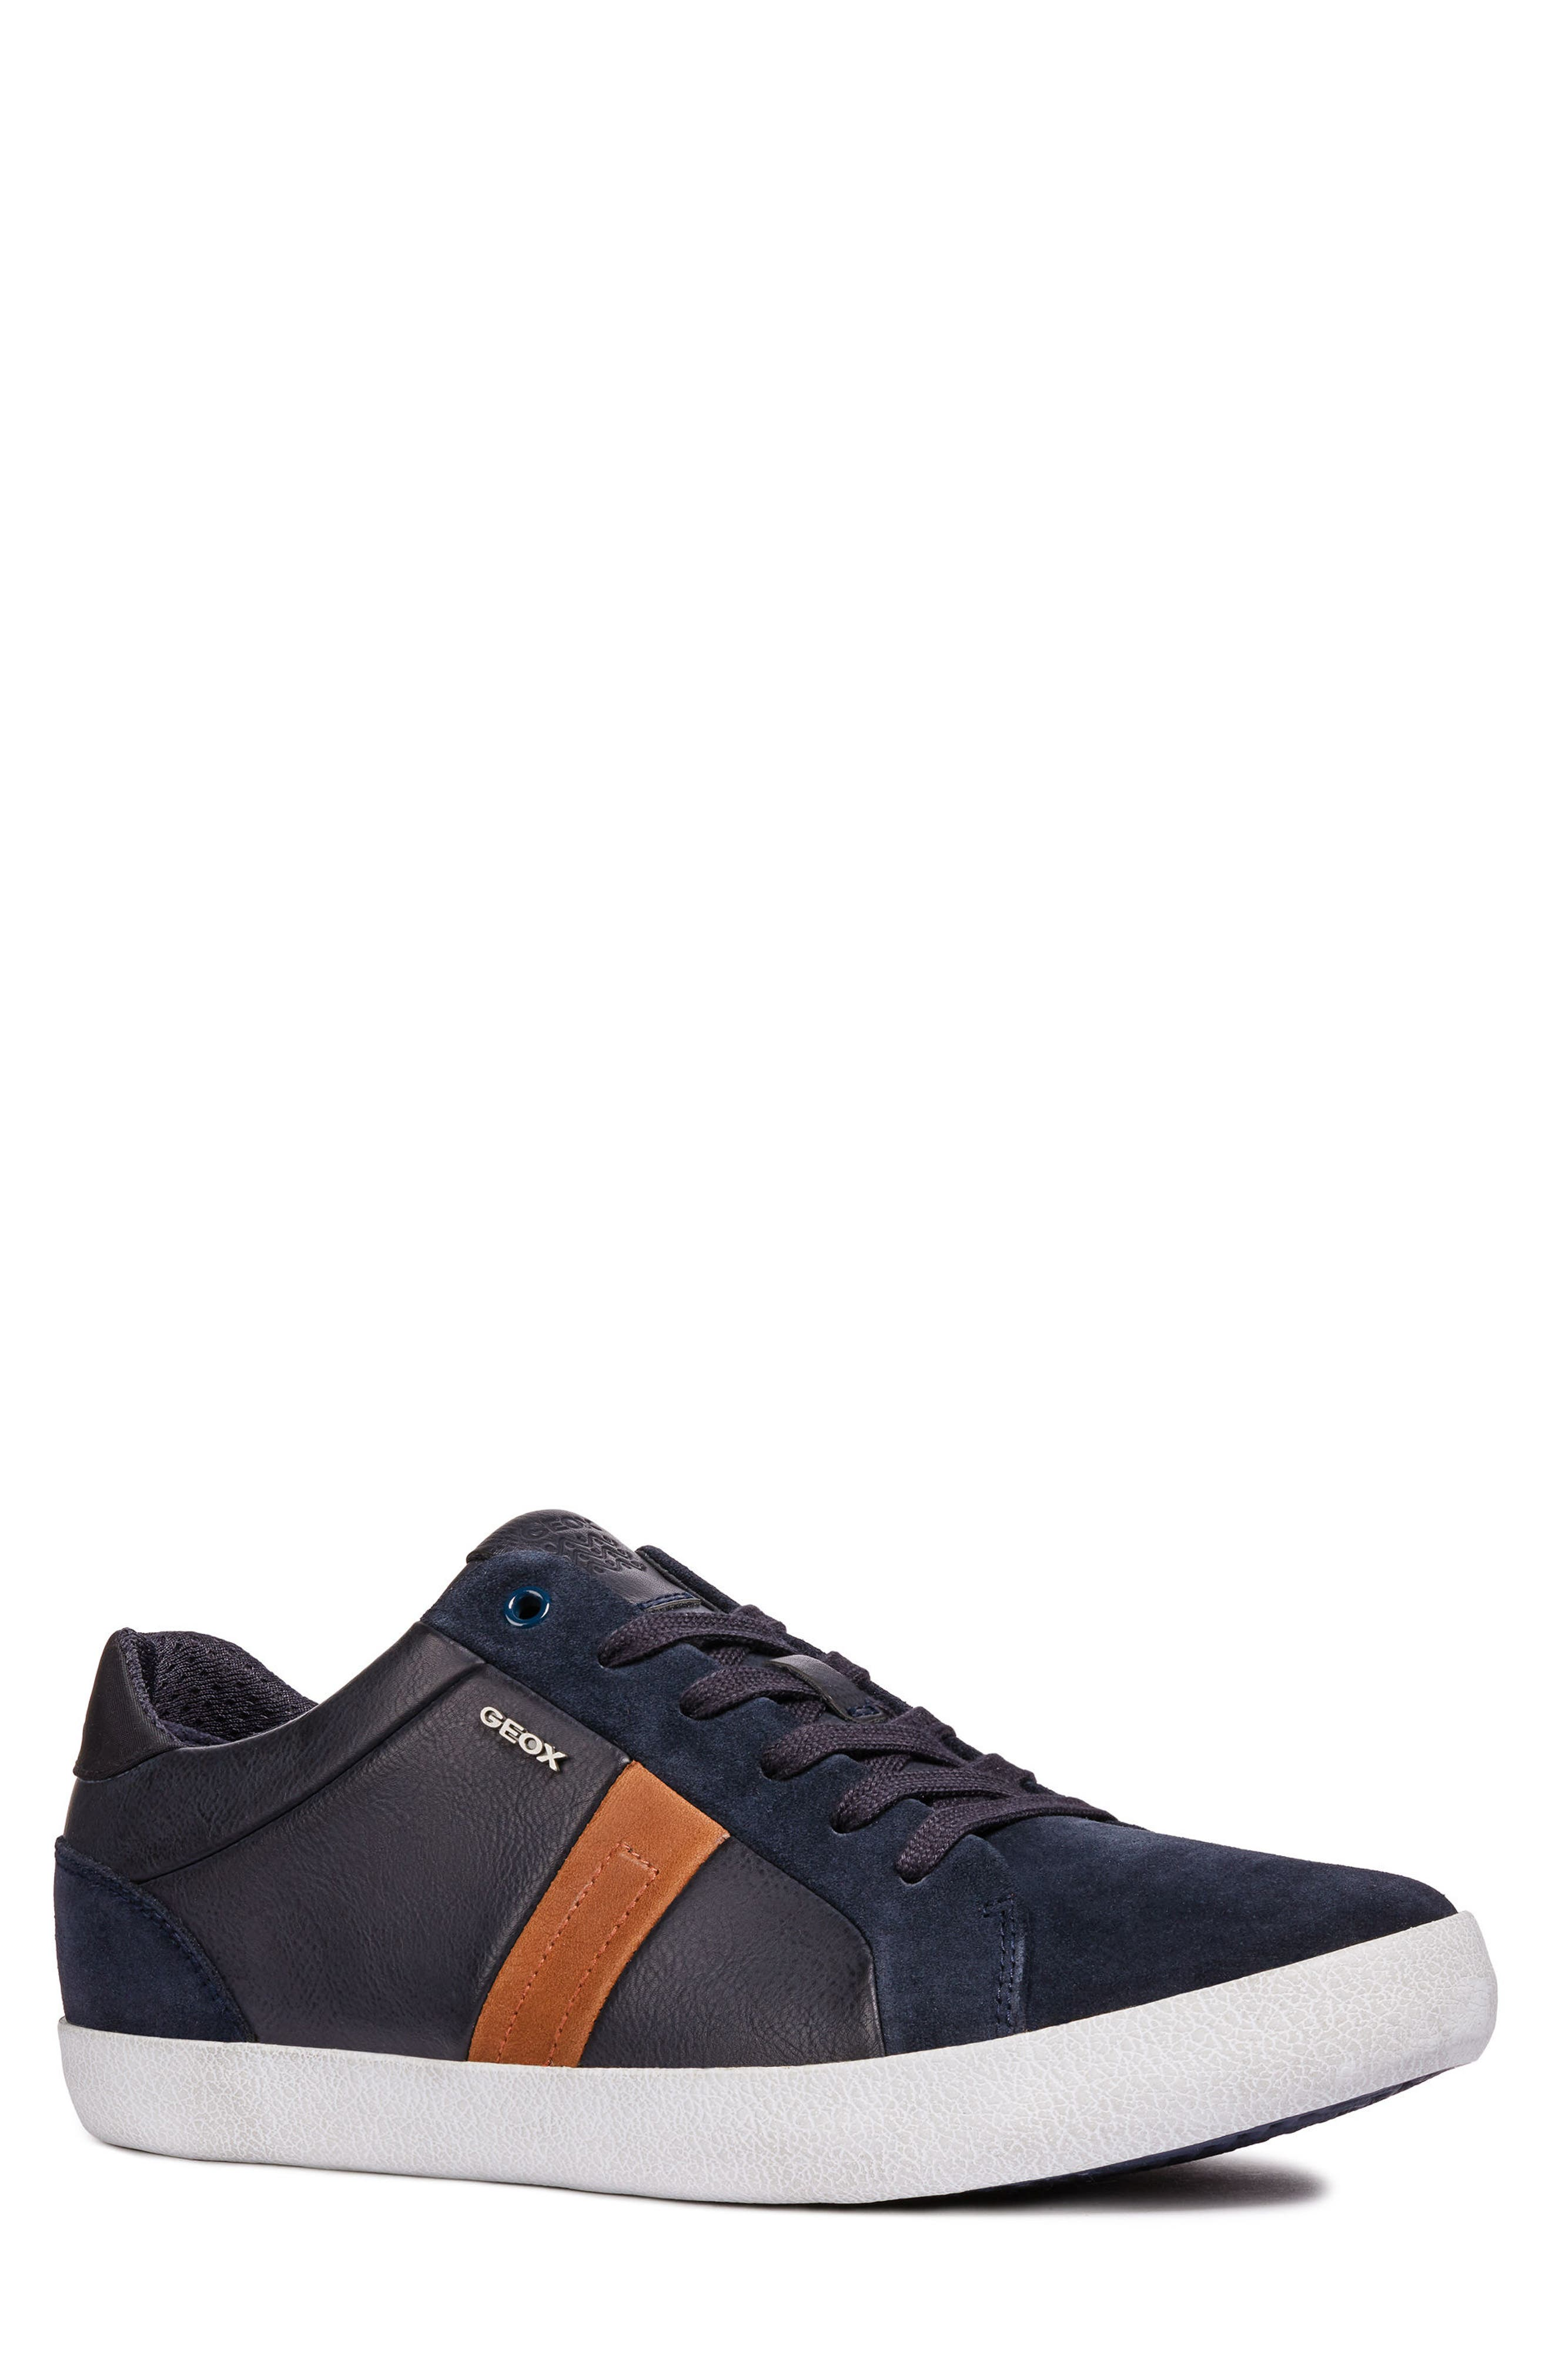 Geox Box 40 Low Top Sneaker, Blue